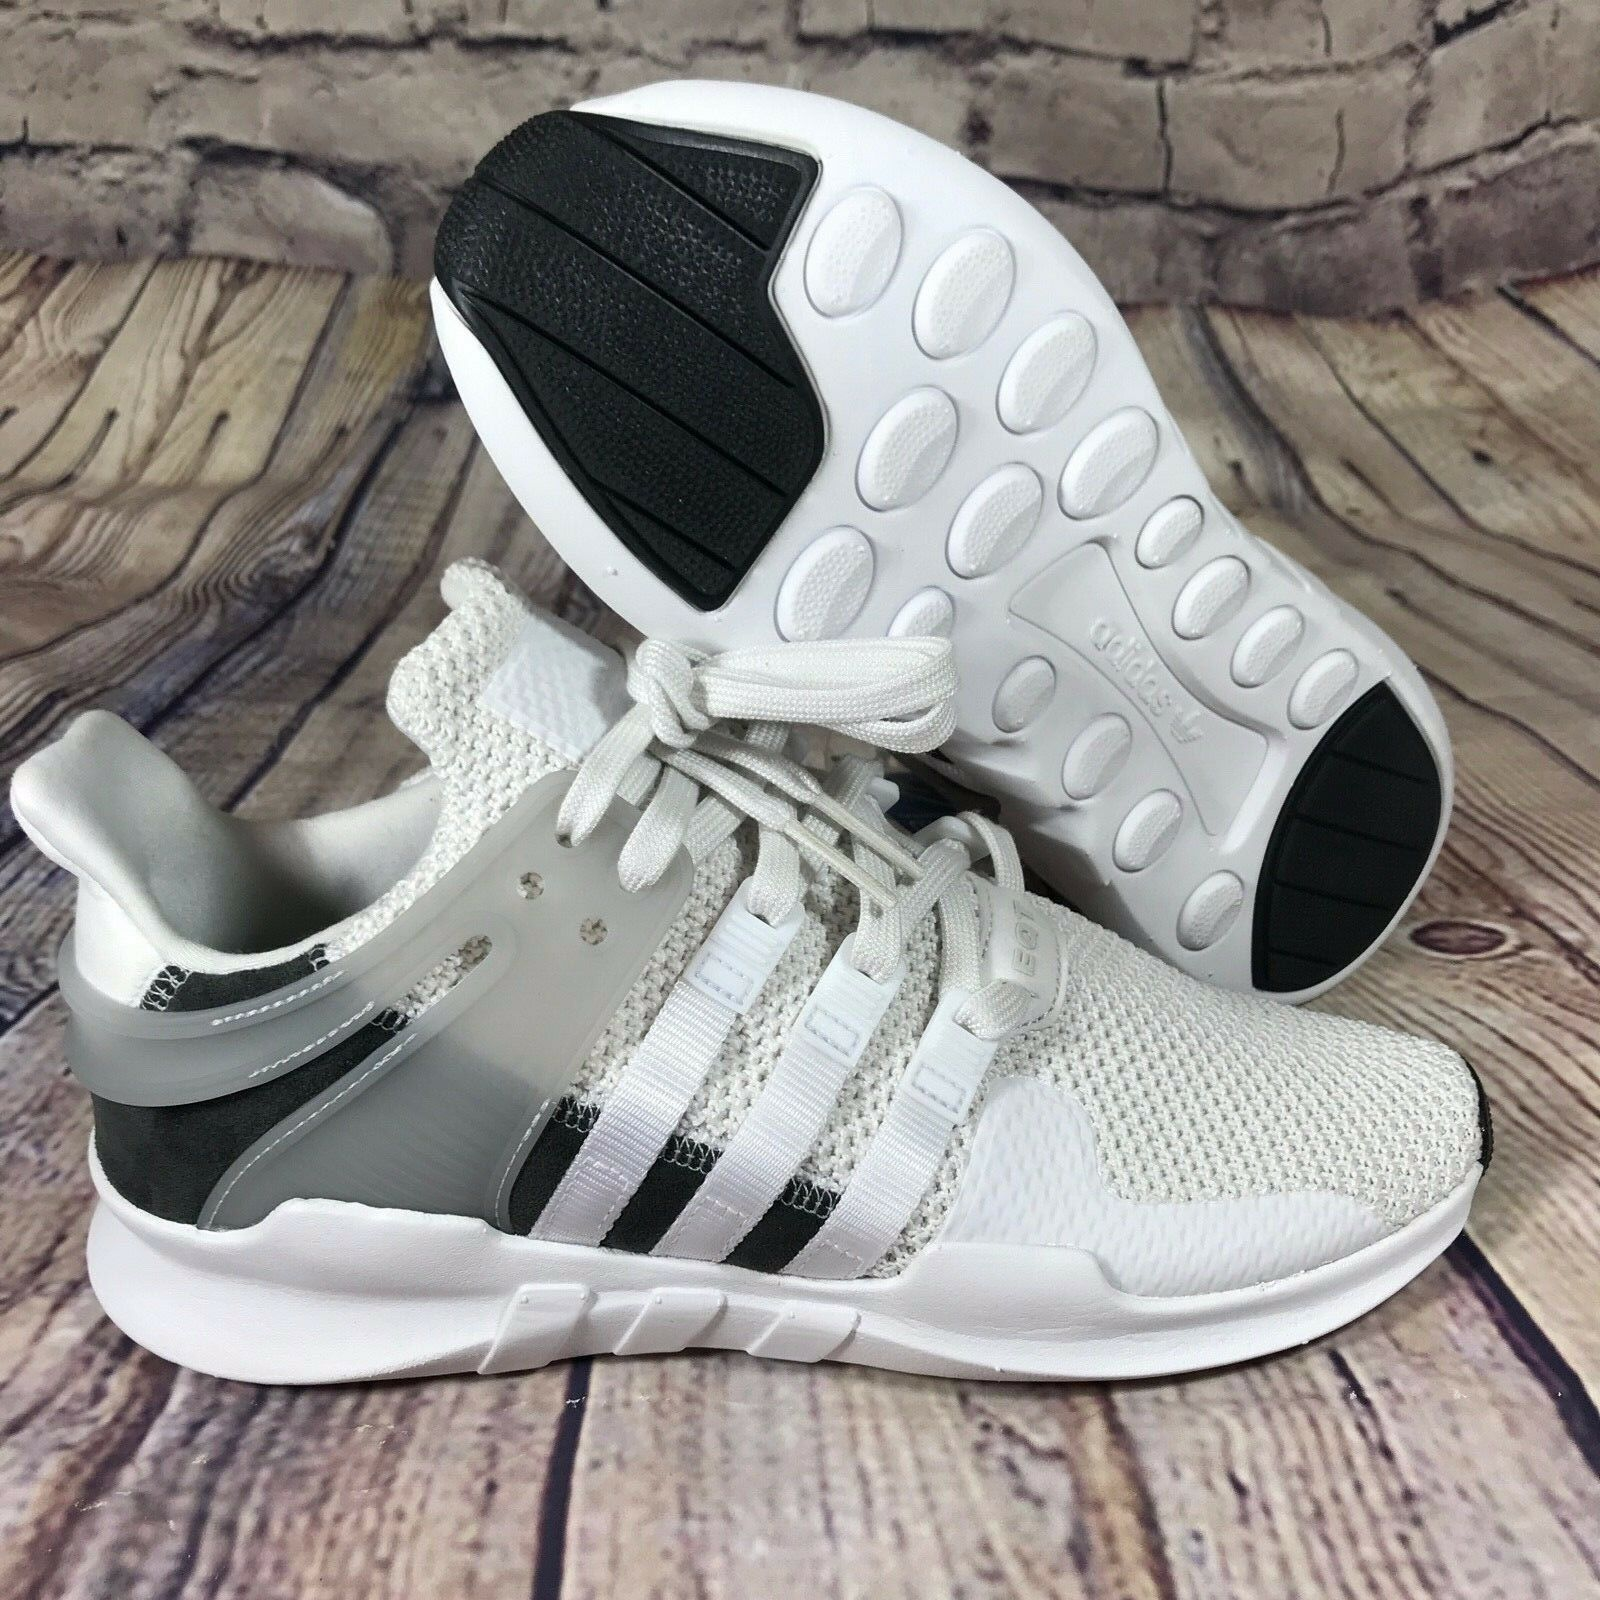 Adidas EQT Support Running shoes Crystal White Grey 91-16 CQ3002 Men's